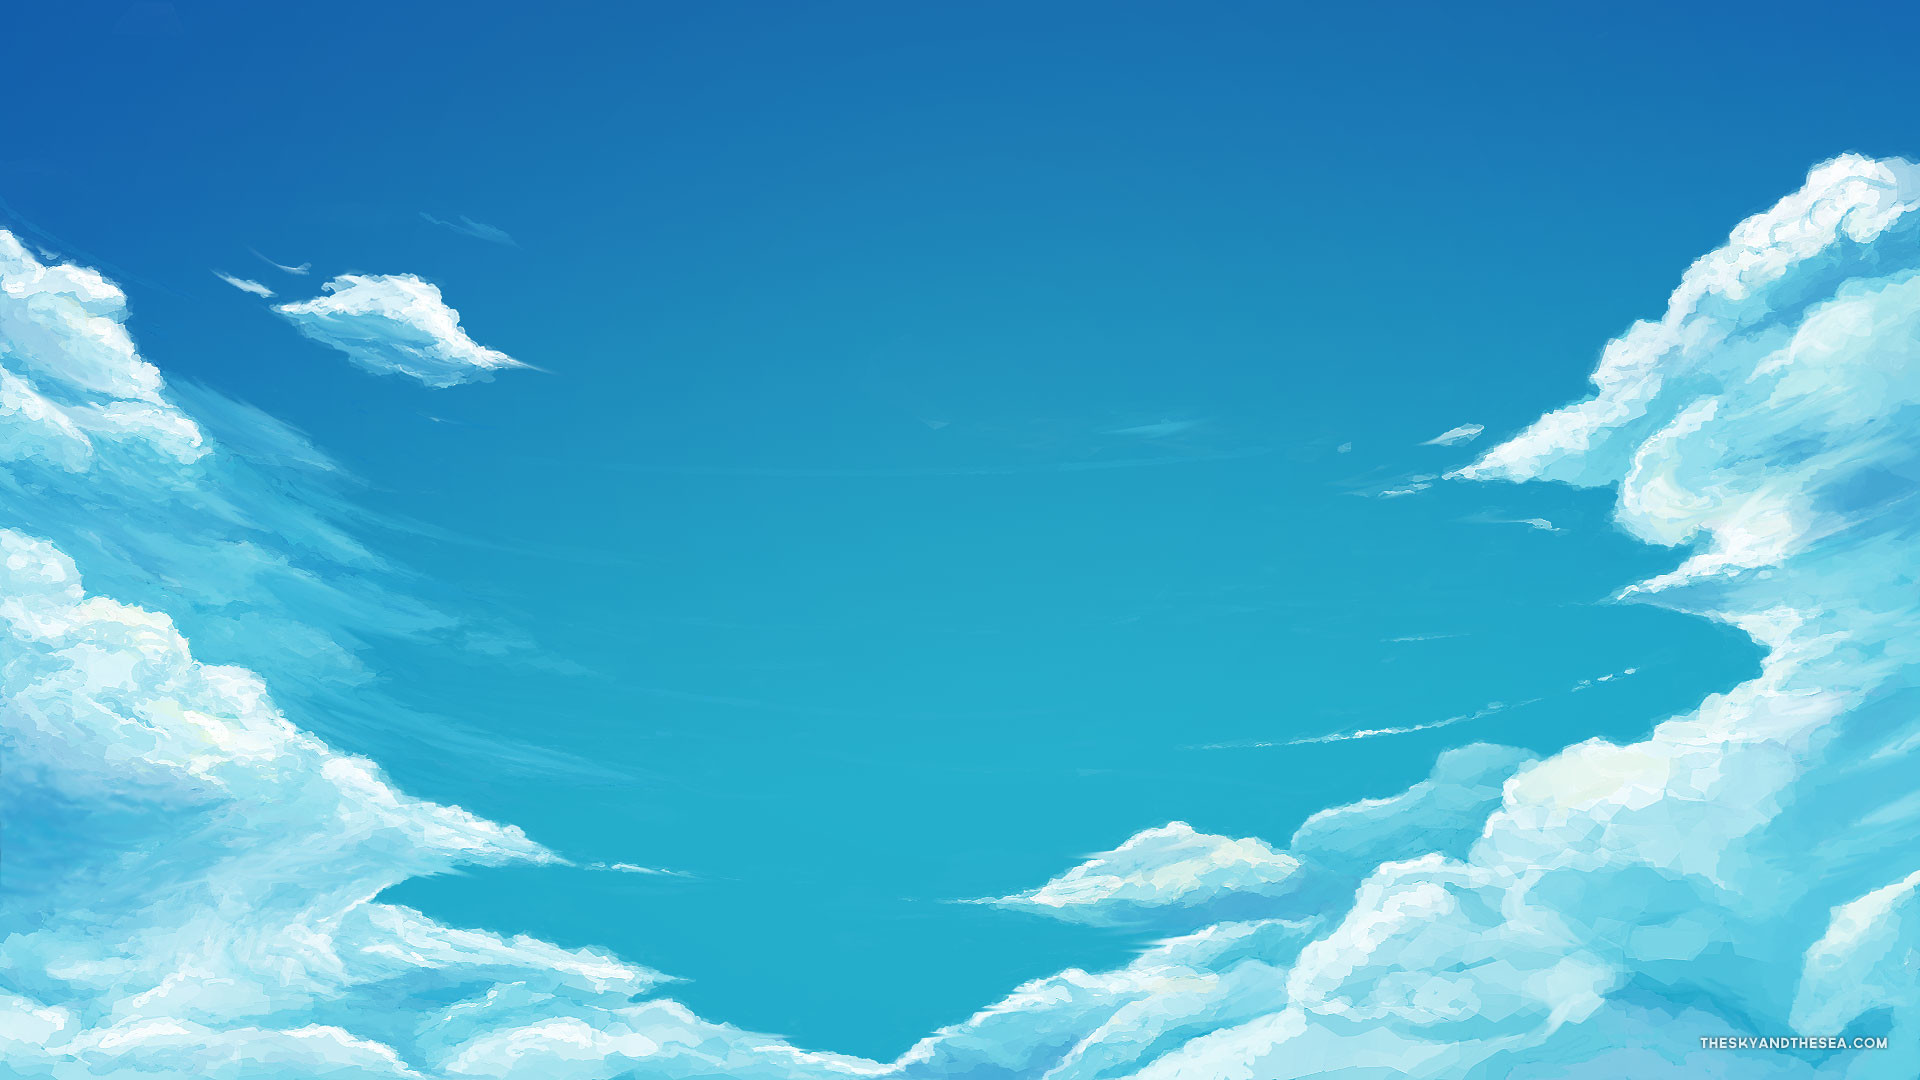 … Collection of Blue Sky Wallpapers on Spyder Wallpapers